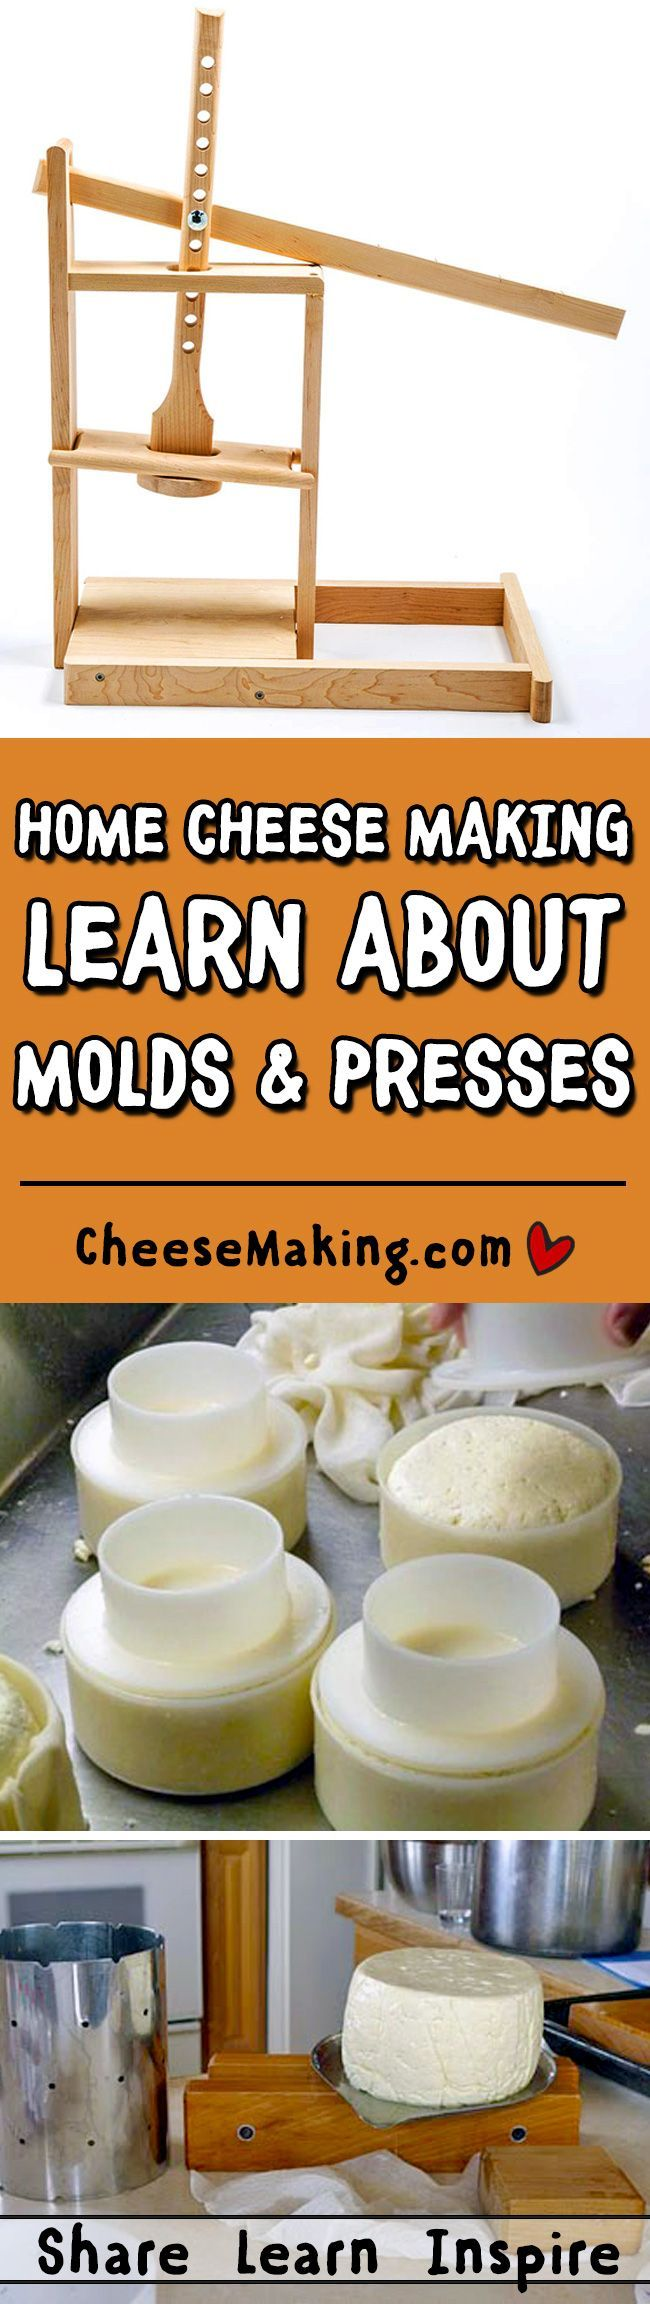 Molding & Pressing Cheese FAQ | How to Make Cheese | http://Cheesemaking.com